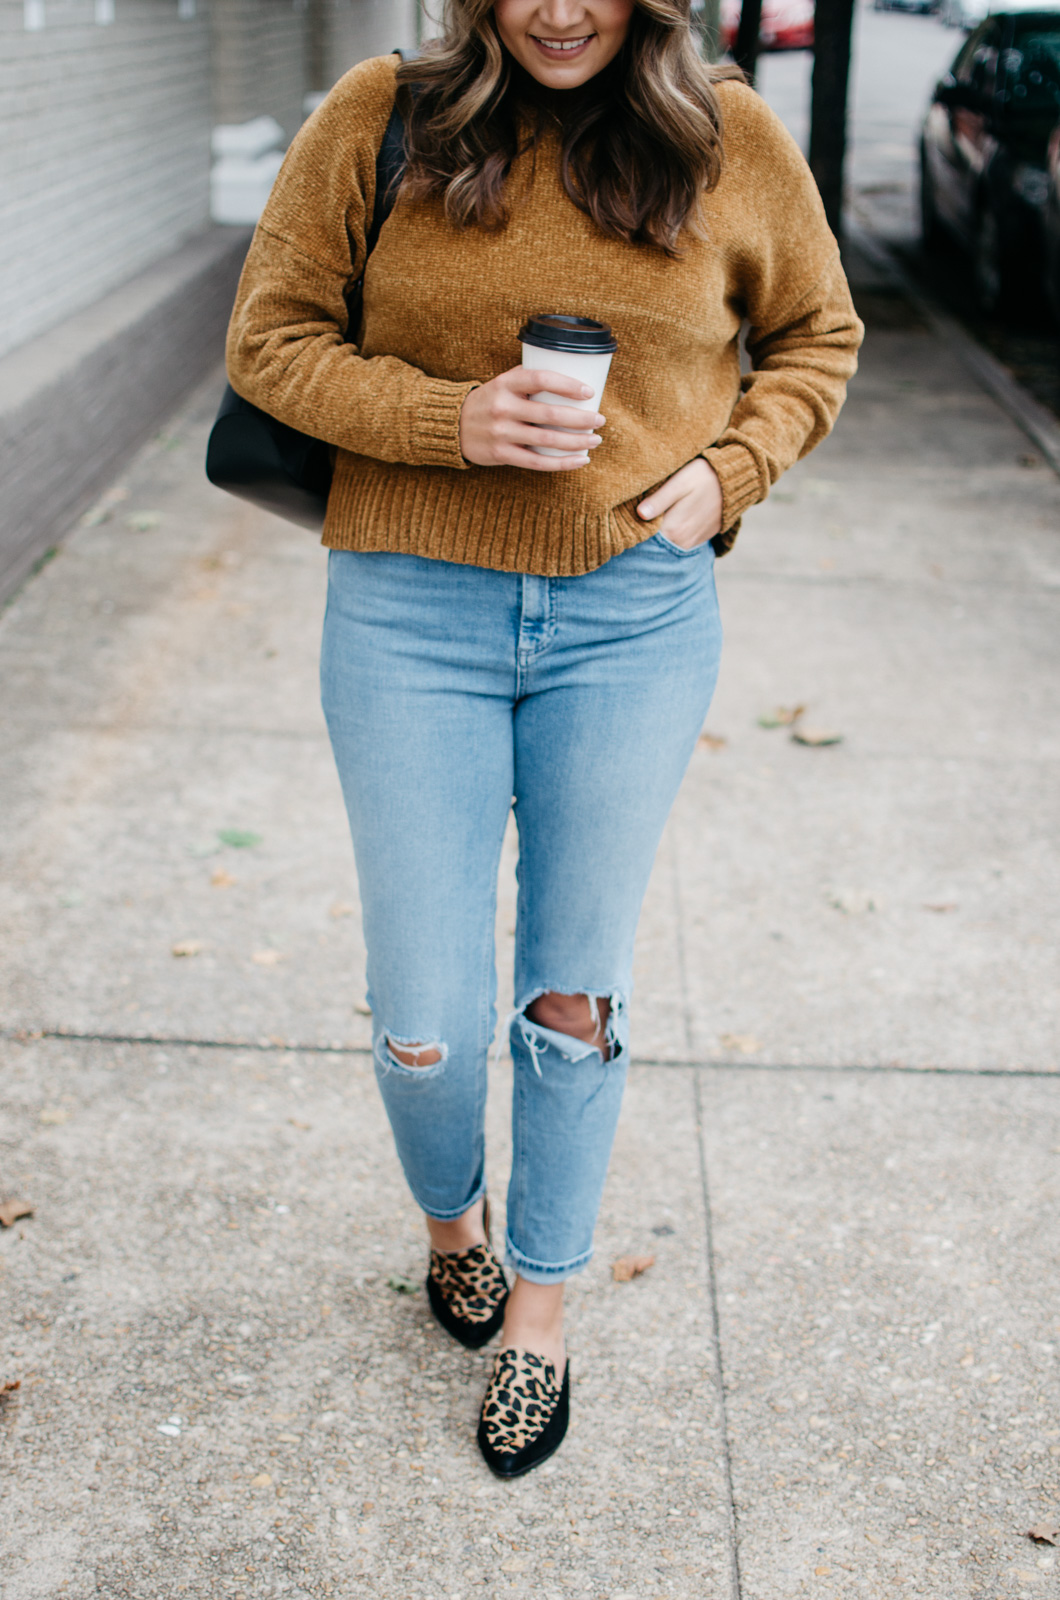 mom jeans fall outfit - how wear mom jeans | See more trendy fall outfits at bylaurenm.com!